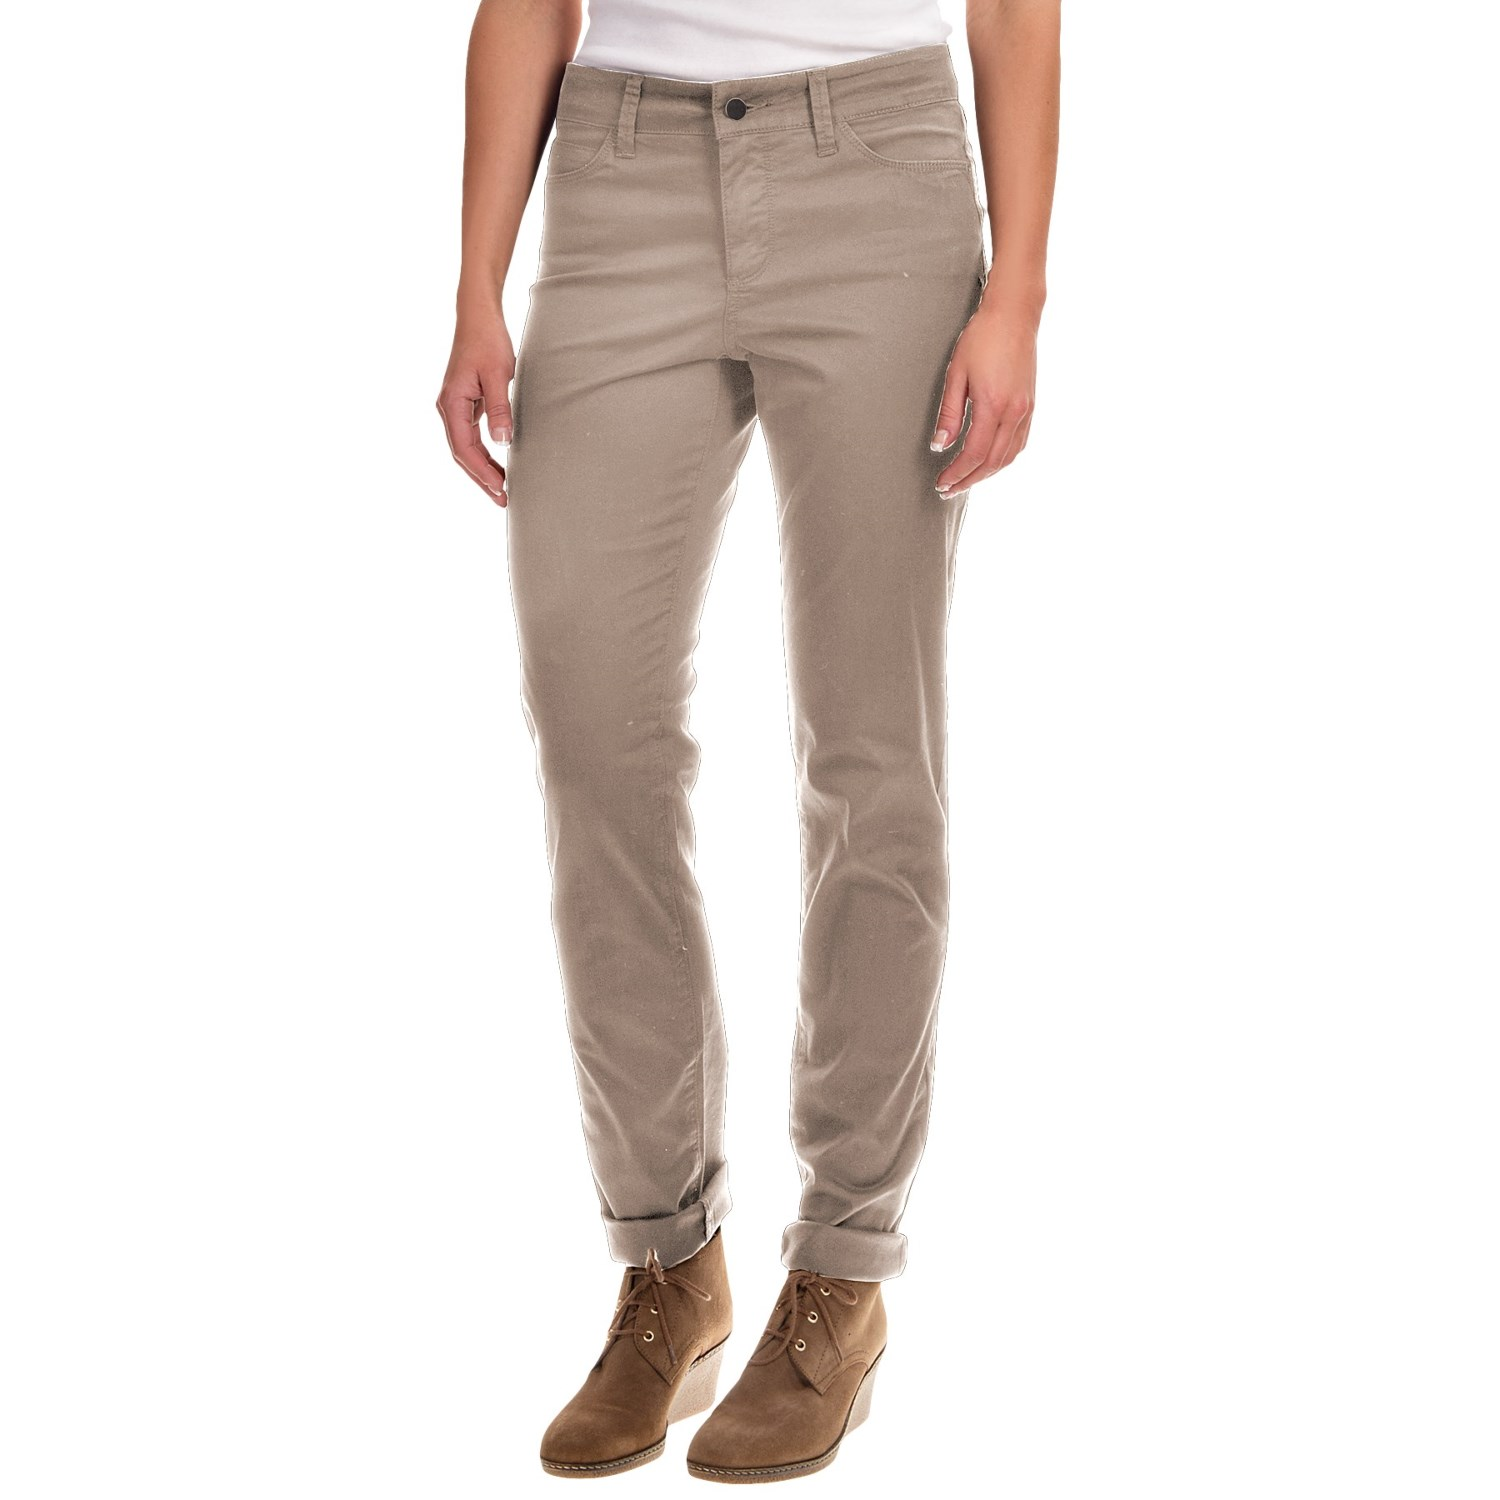 Check out Lee's stylish selection of cargo pants, khakis, and chinos for women. Shop our array of women's pants online and receive free shipping.